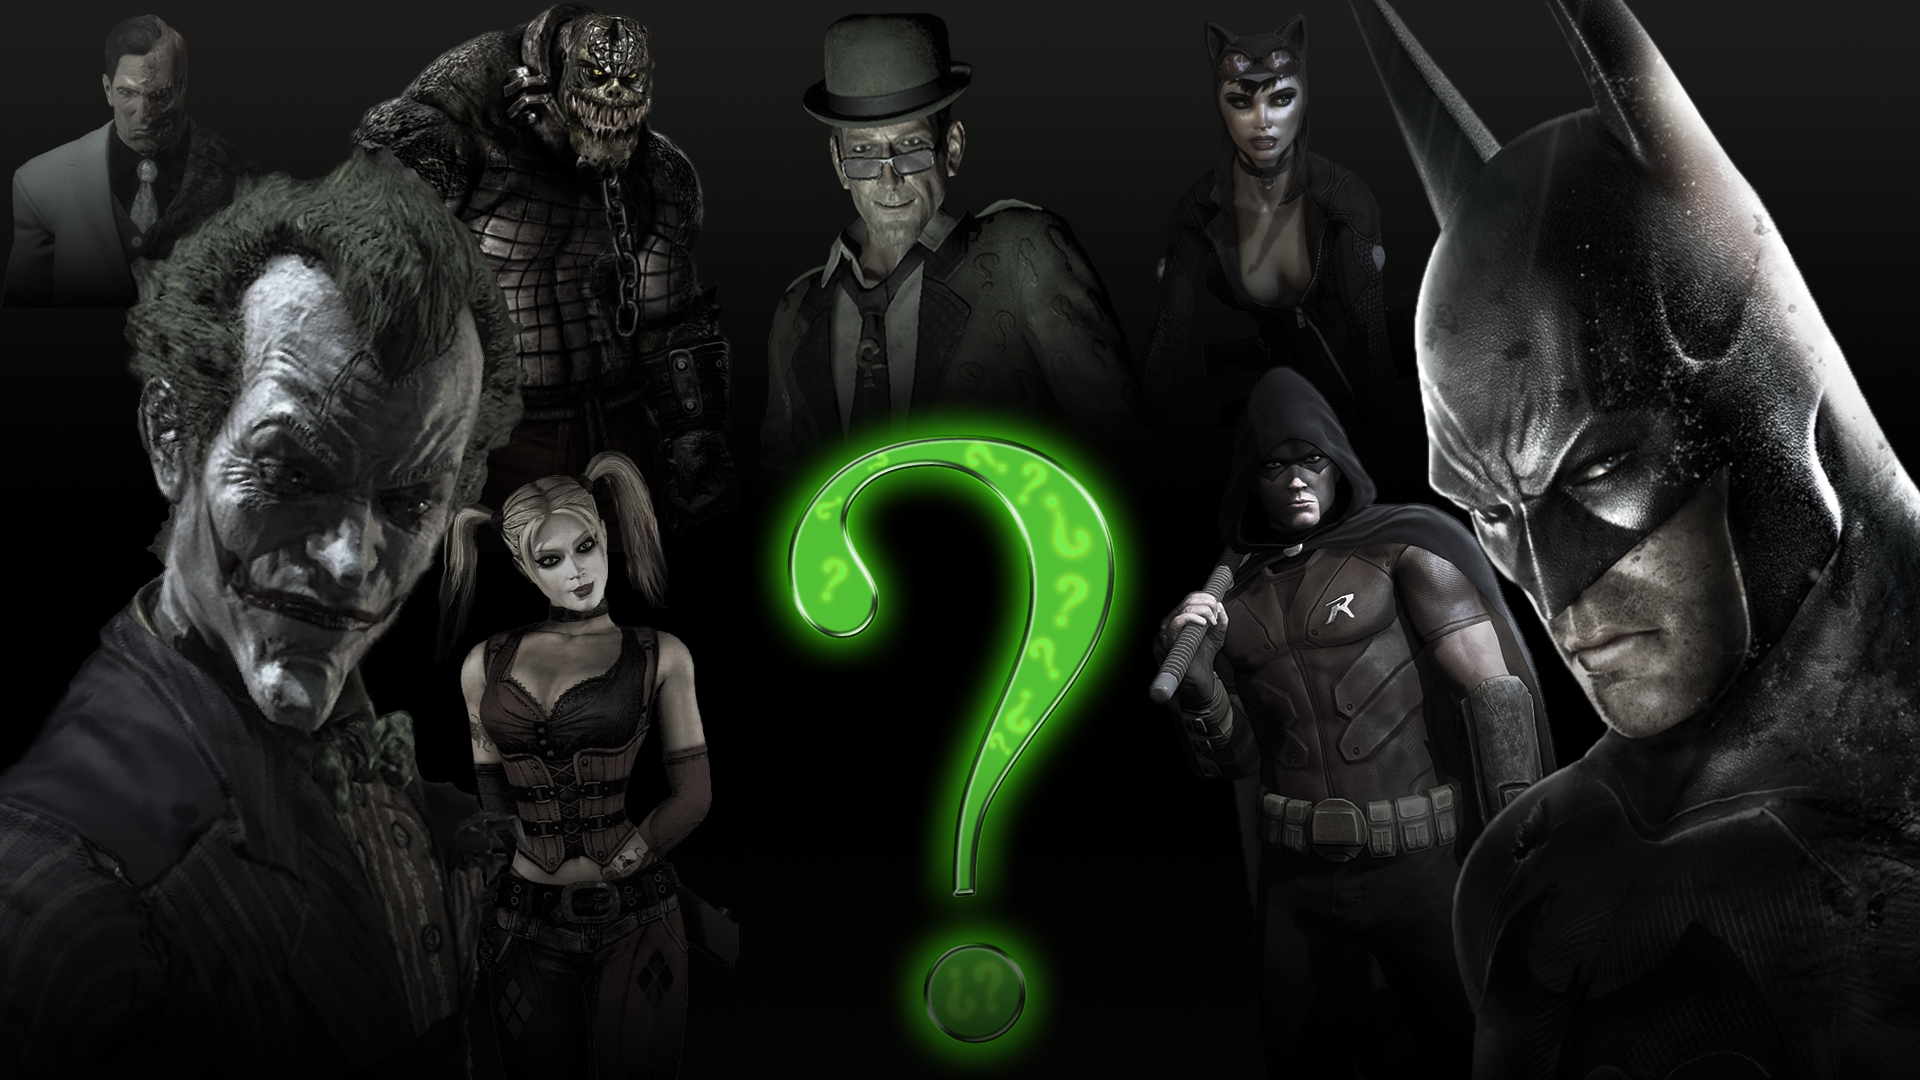 Batman Arkham City Batman Arkham Stad Joker Riddle Wallpaper 1920x1080